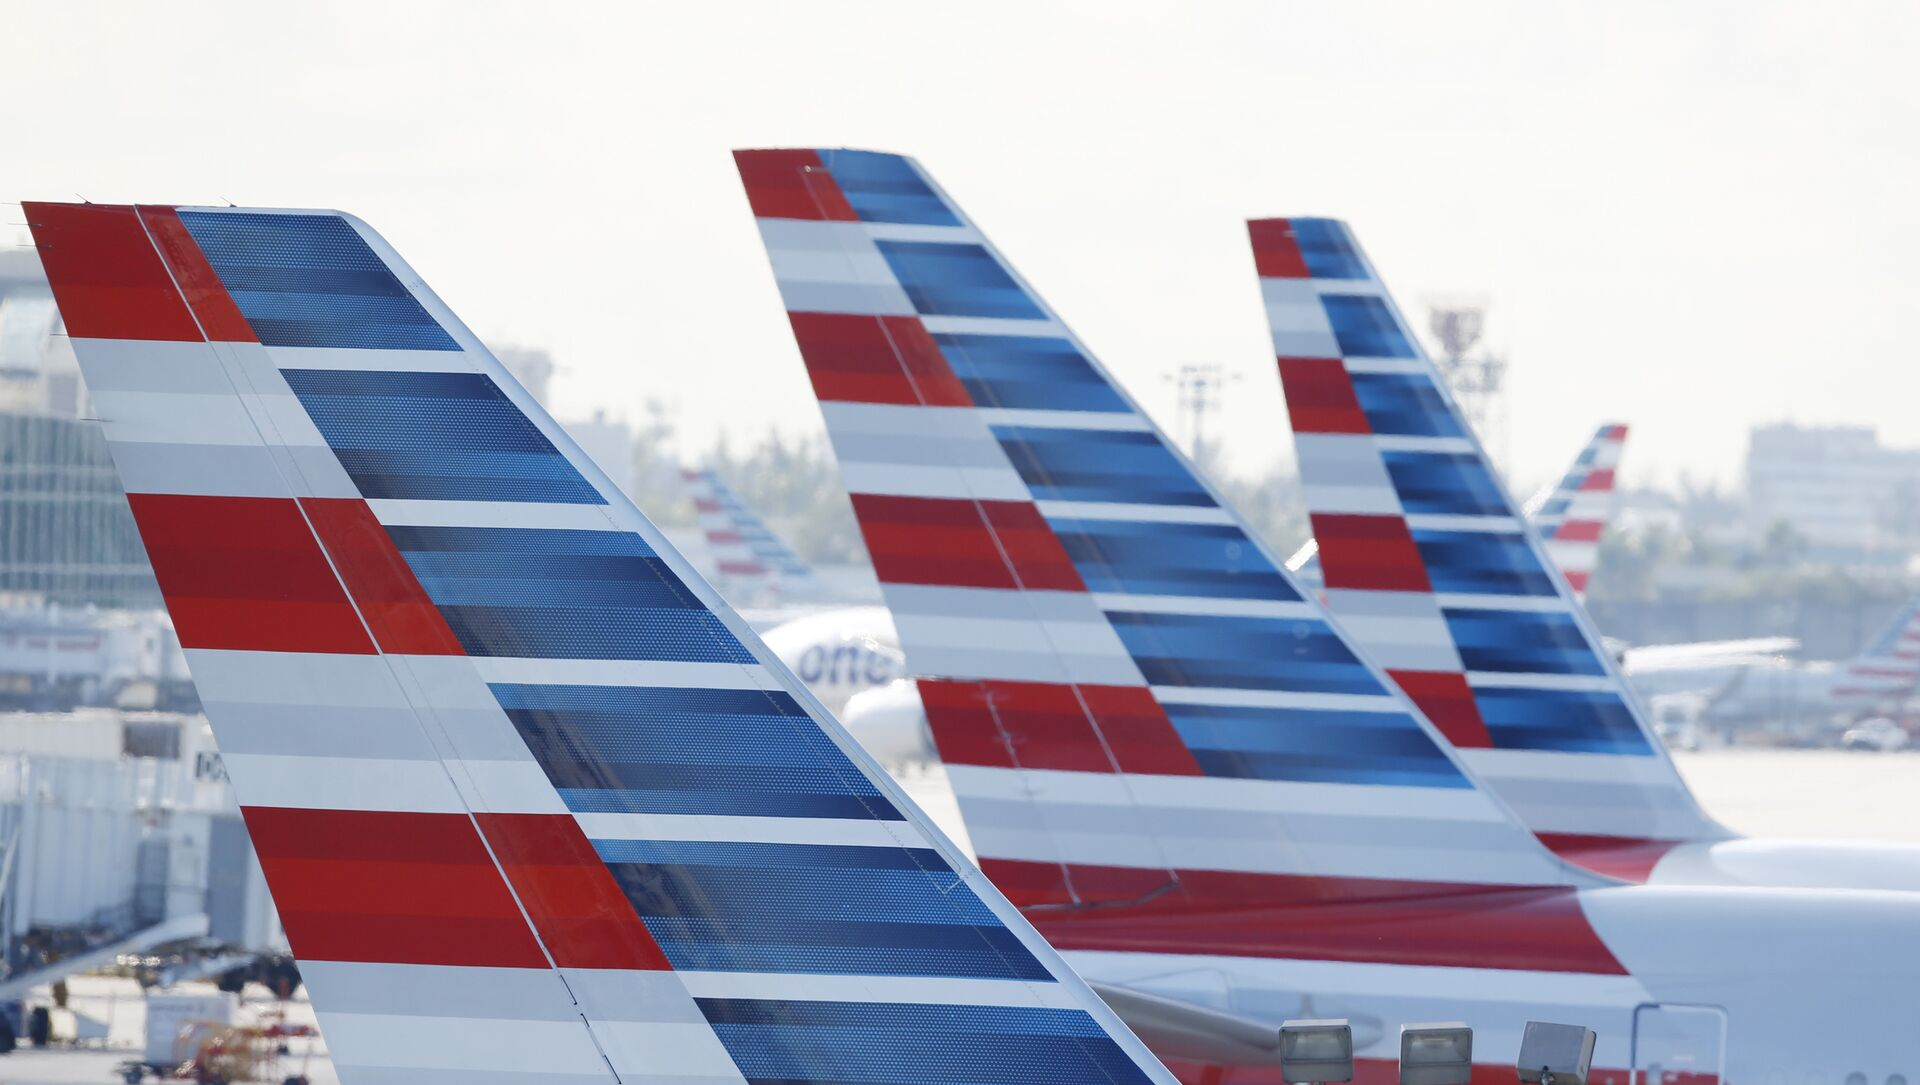 Painted vertical stabilizers are viewed as American Airlines jets are parked on the airport apron, Monday, Nov. 6, 2017, at Miami International Airport in Miami. American Airlines and a subsidiary will pay $9.8 million in stock to settle claims that they failed to help disabled employees return to work. - Sputnik International, 1920, 26.07.2021